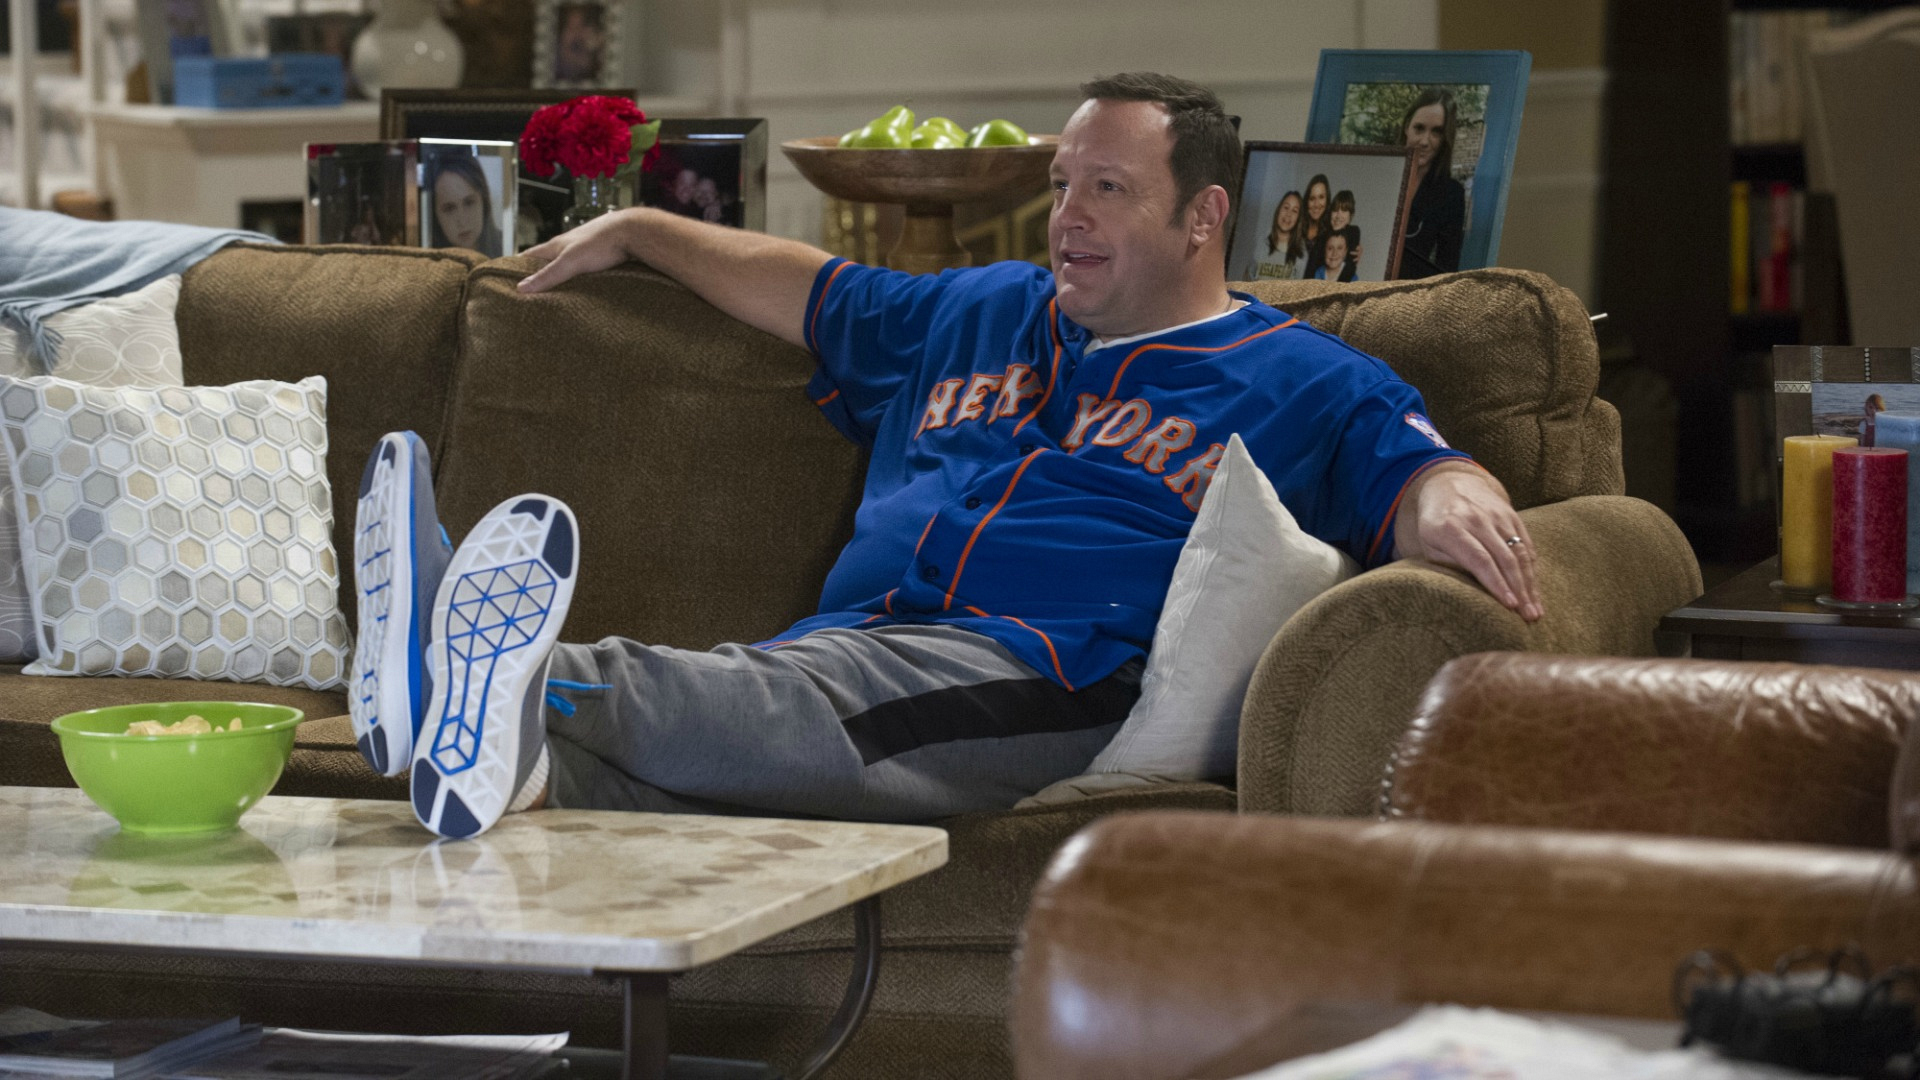 Kevin kicks his feet up as he watches the baseball game.